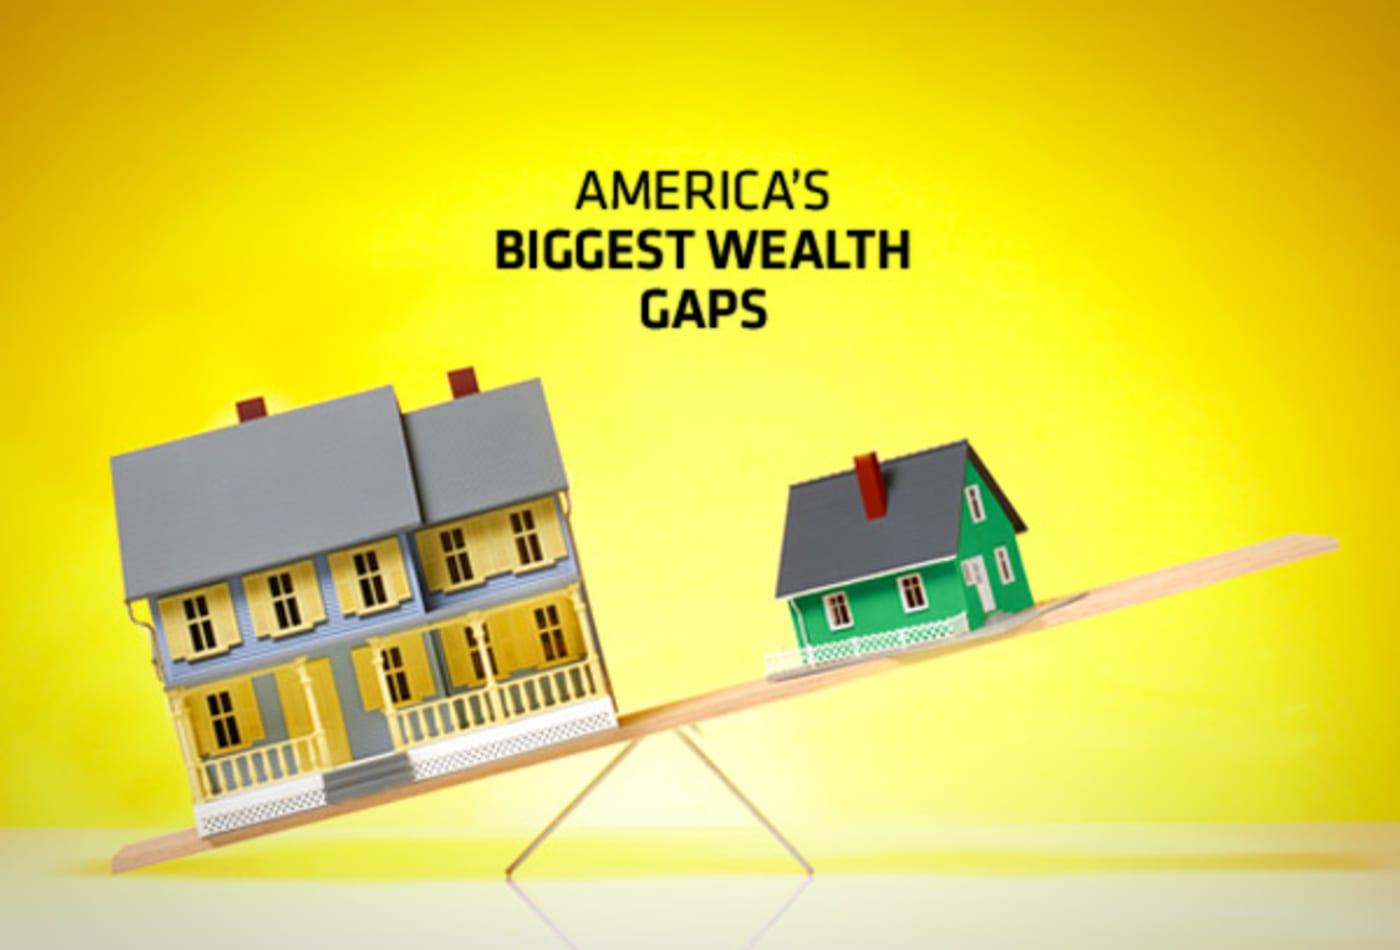 americas-biggest-wealth-gap-county-to-county-cover.jpg